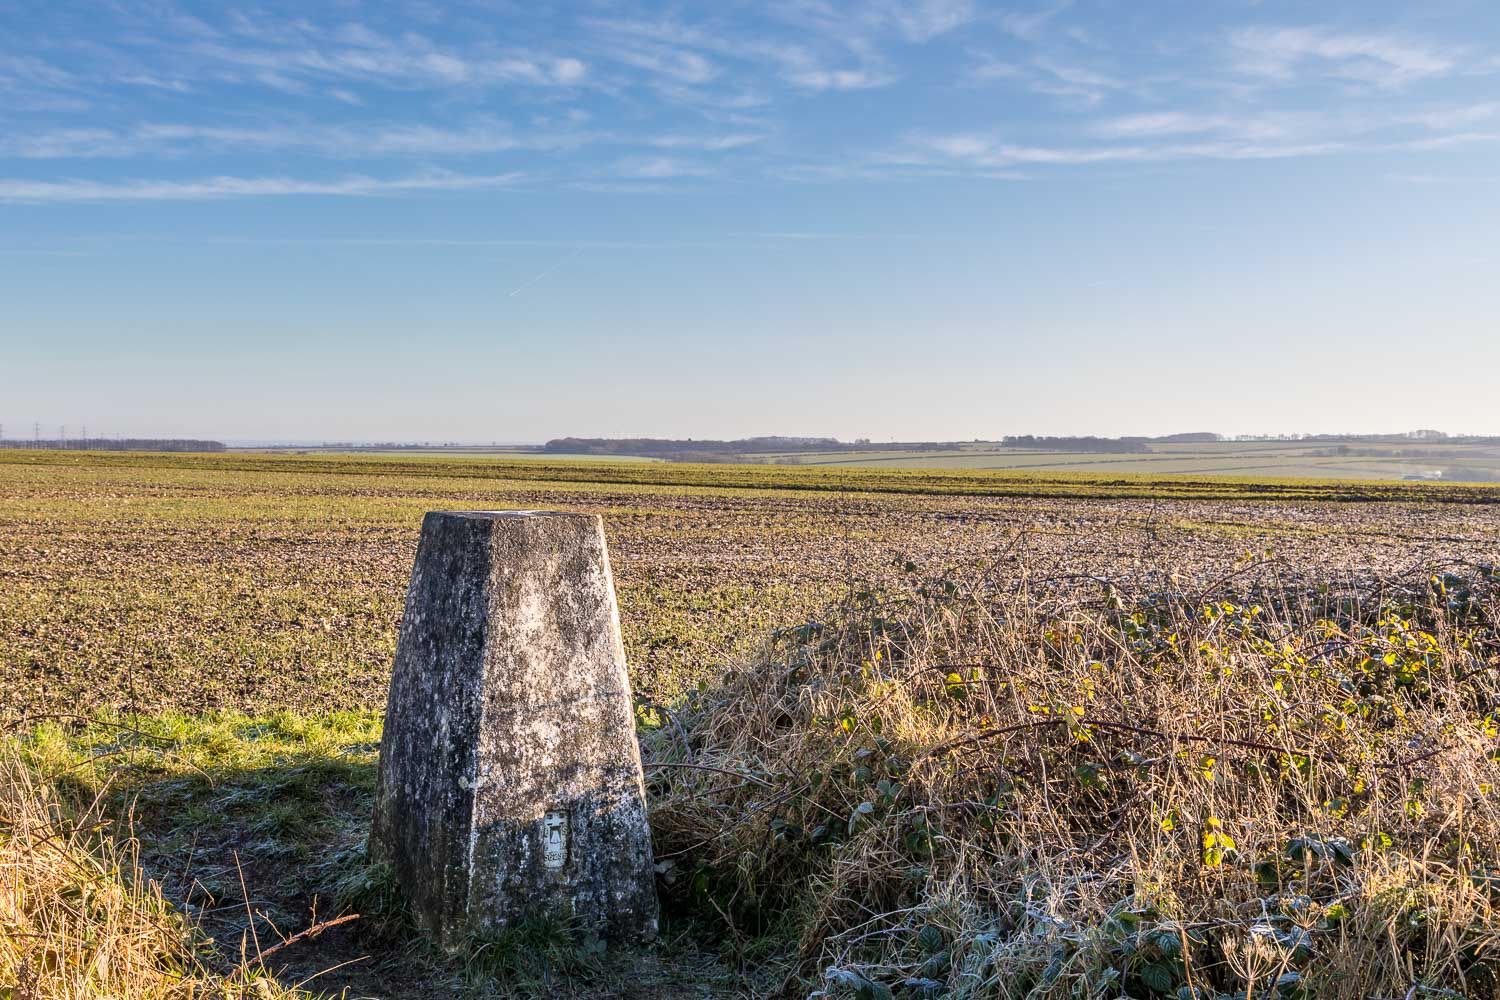 OS trig point, High Hunsley Circuit